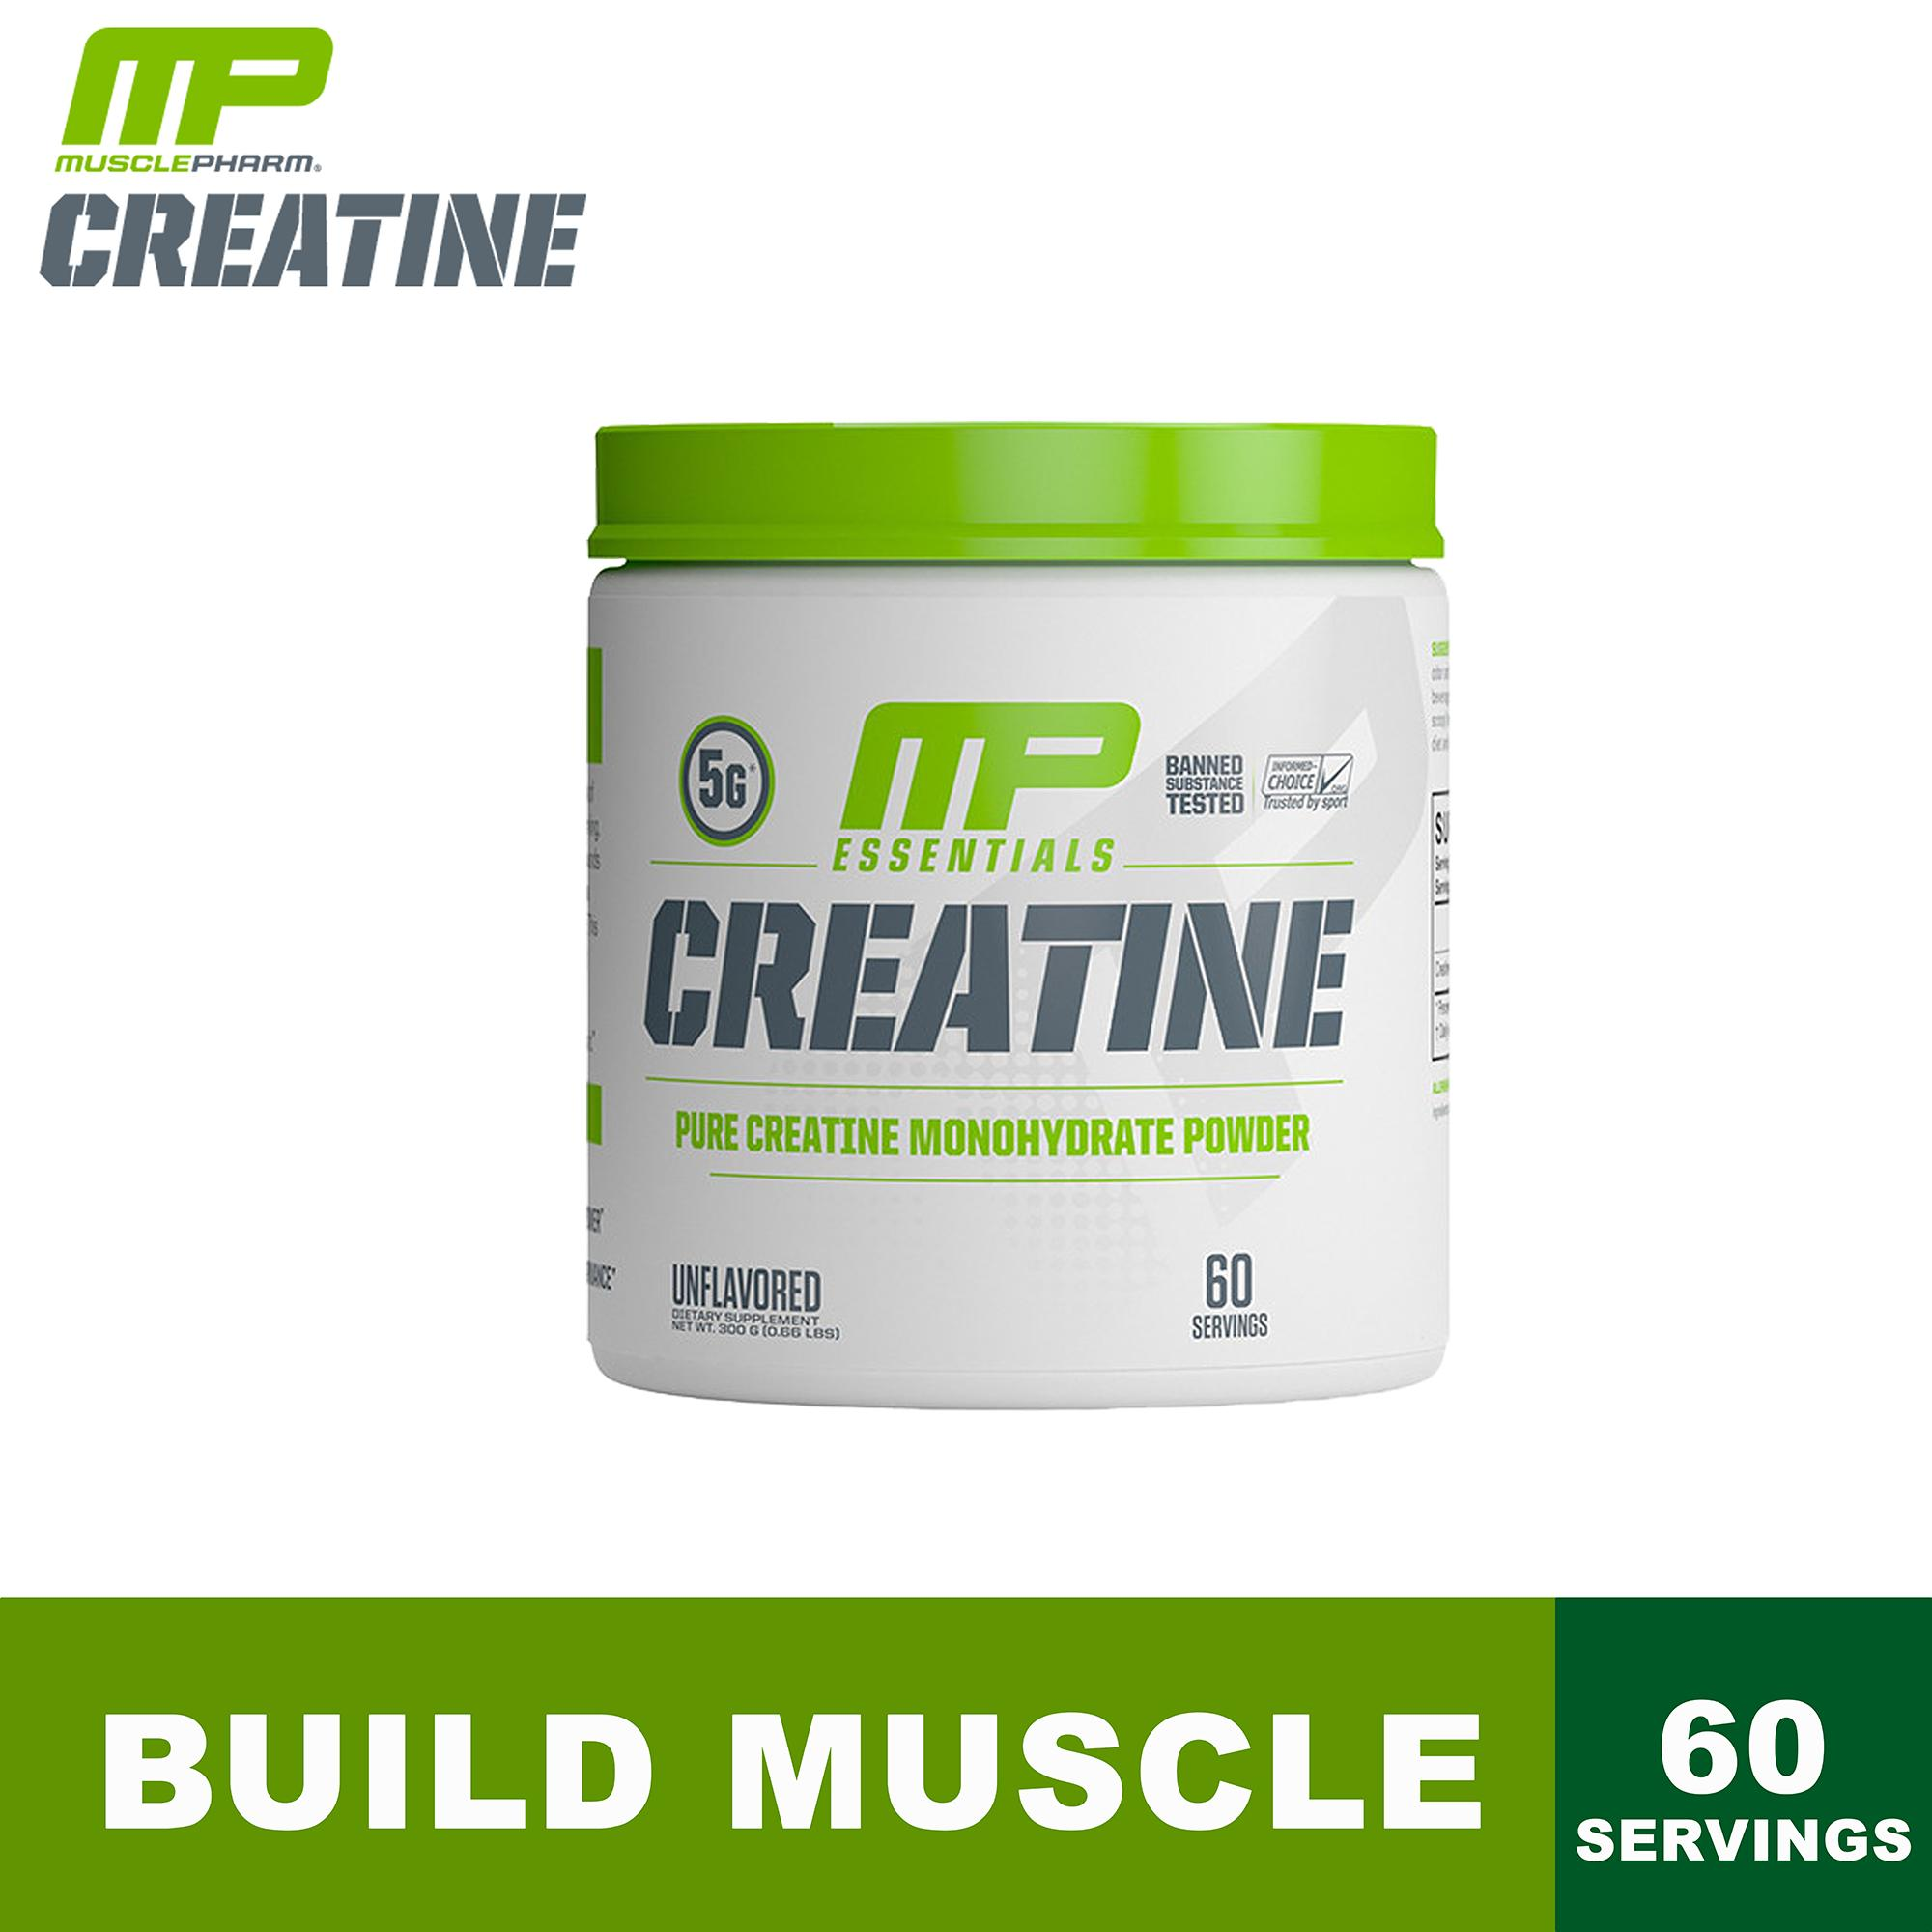 Musclepharm, Essentials Series, Pure Creatine, 60 Servings, 300g By Hna.